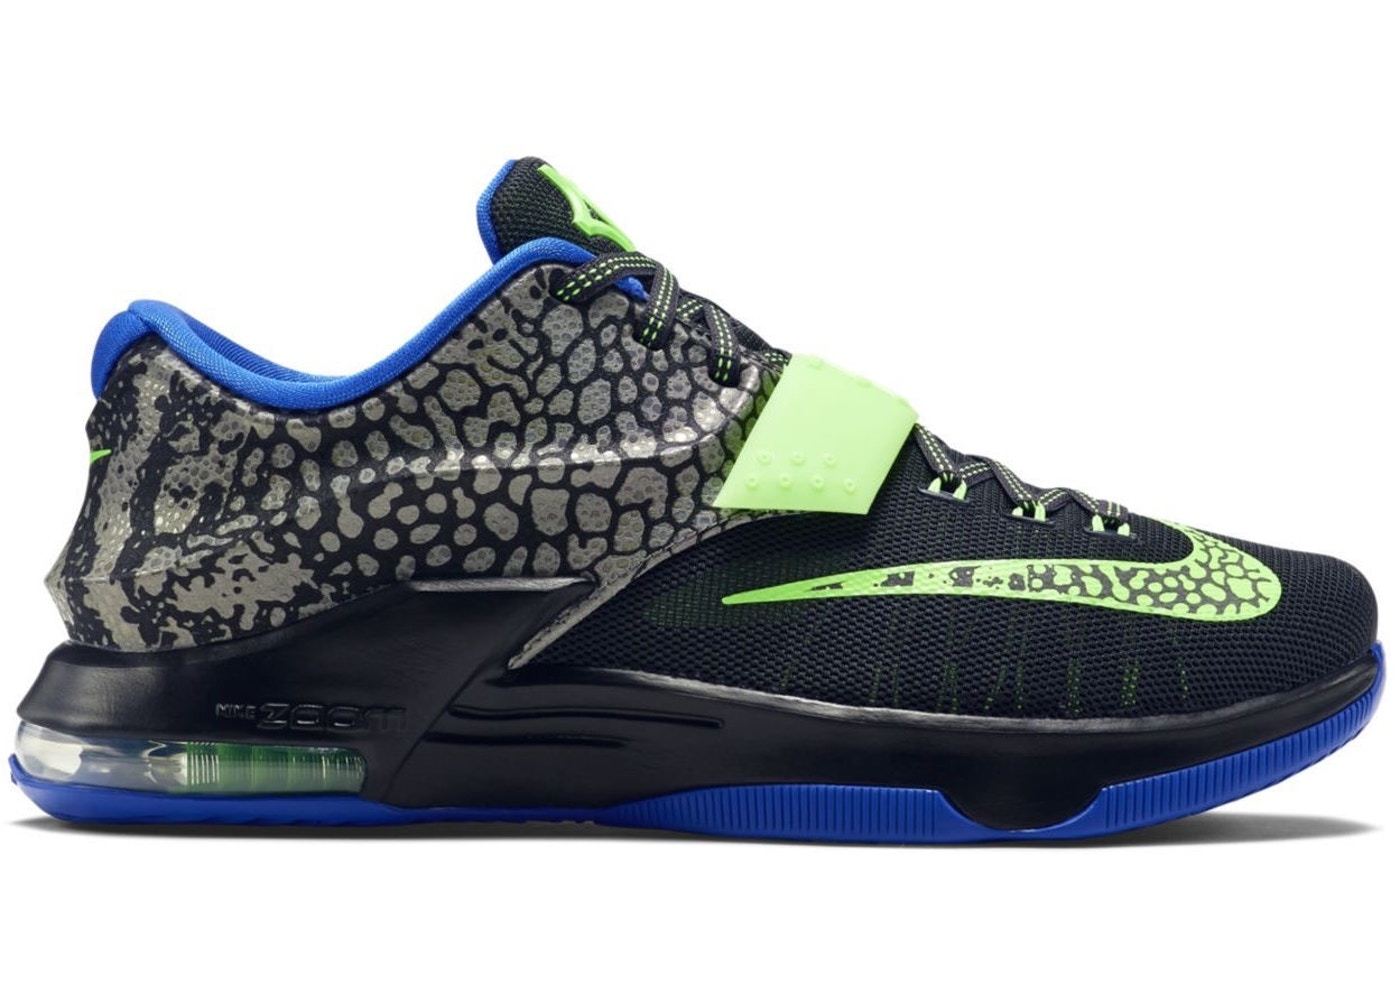 low priced c7727 76edd Nike KD 7 Shoes - Release Date